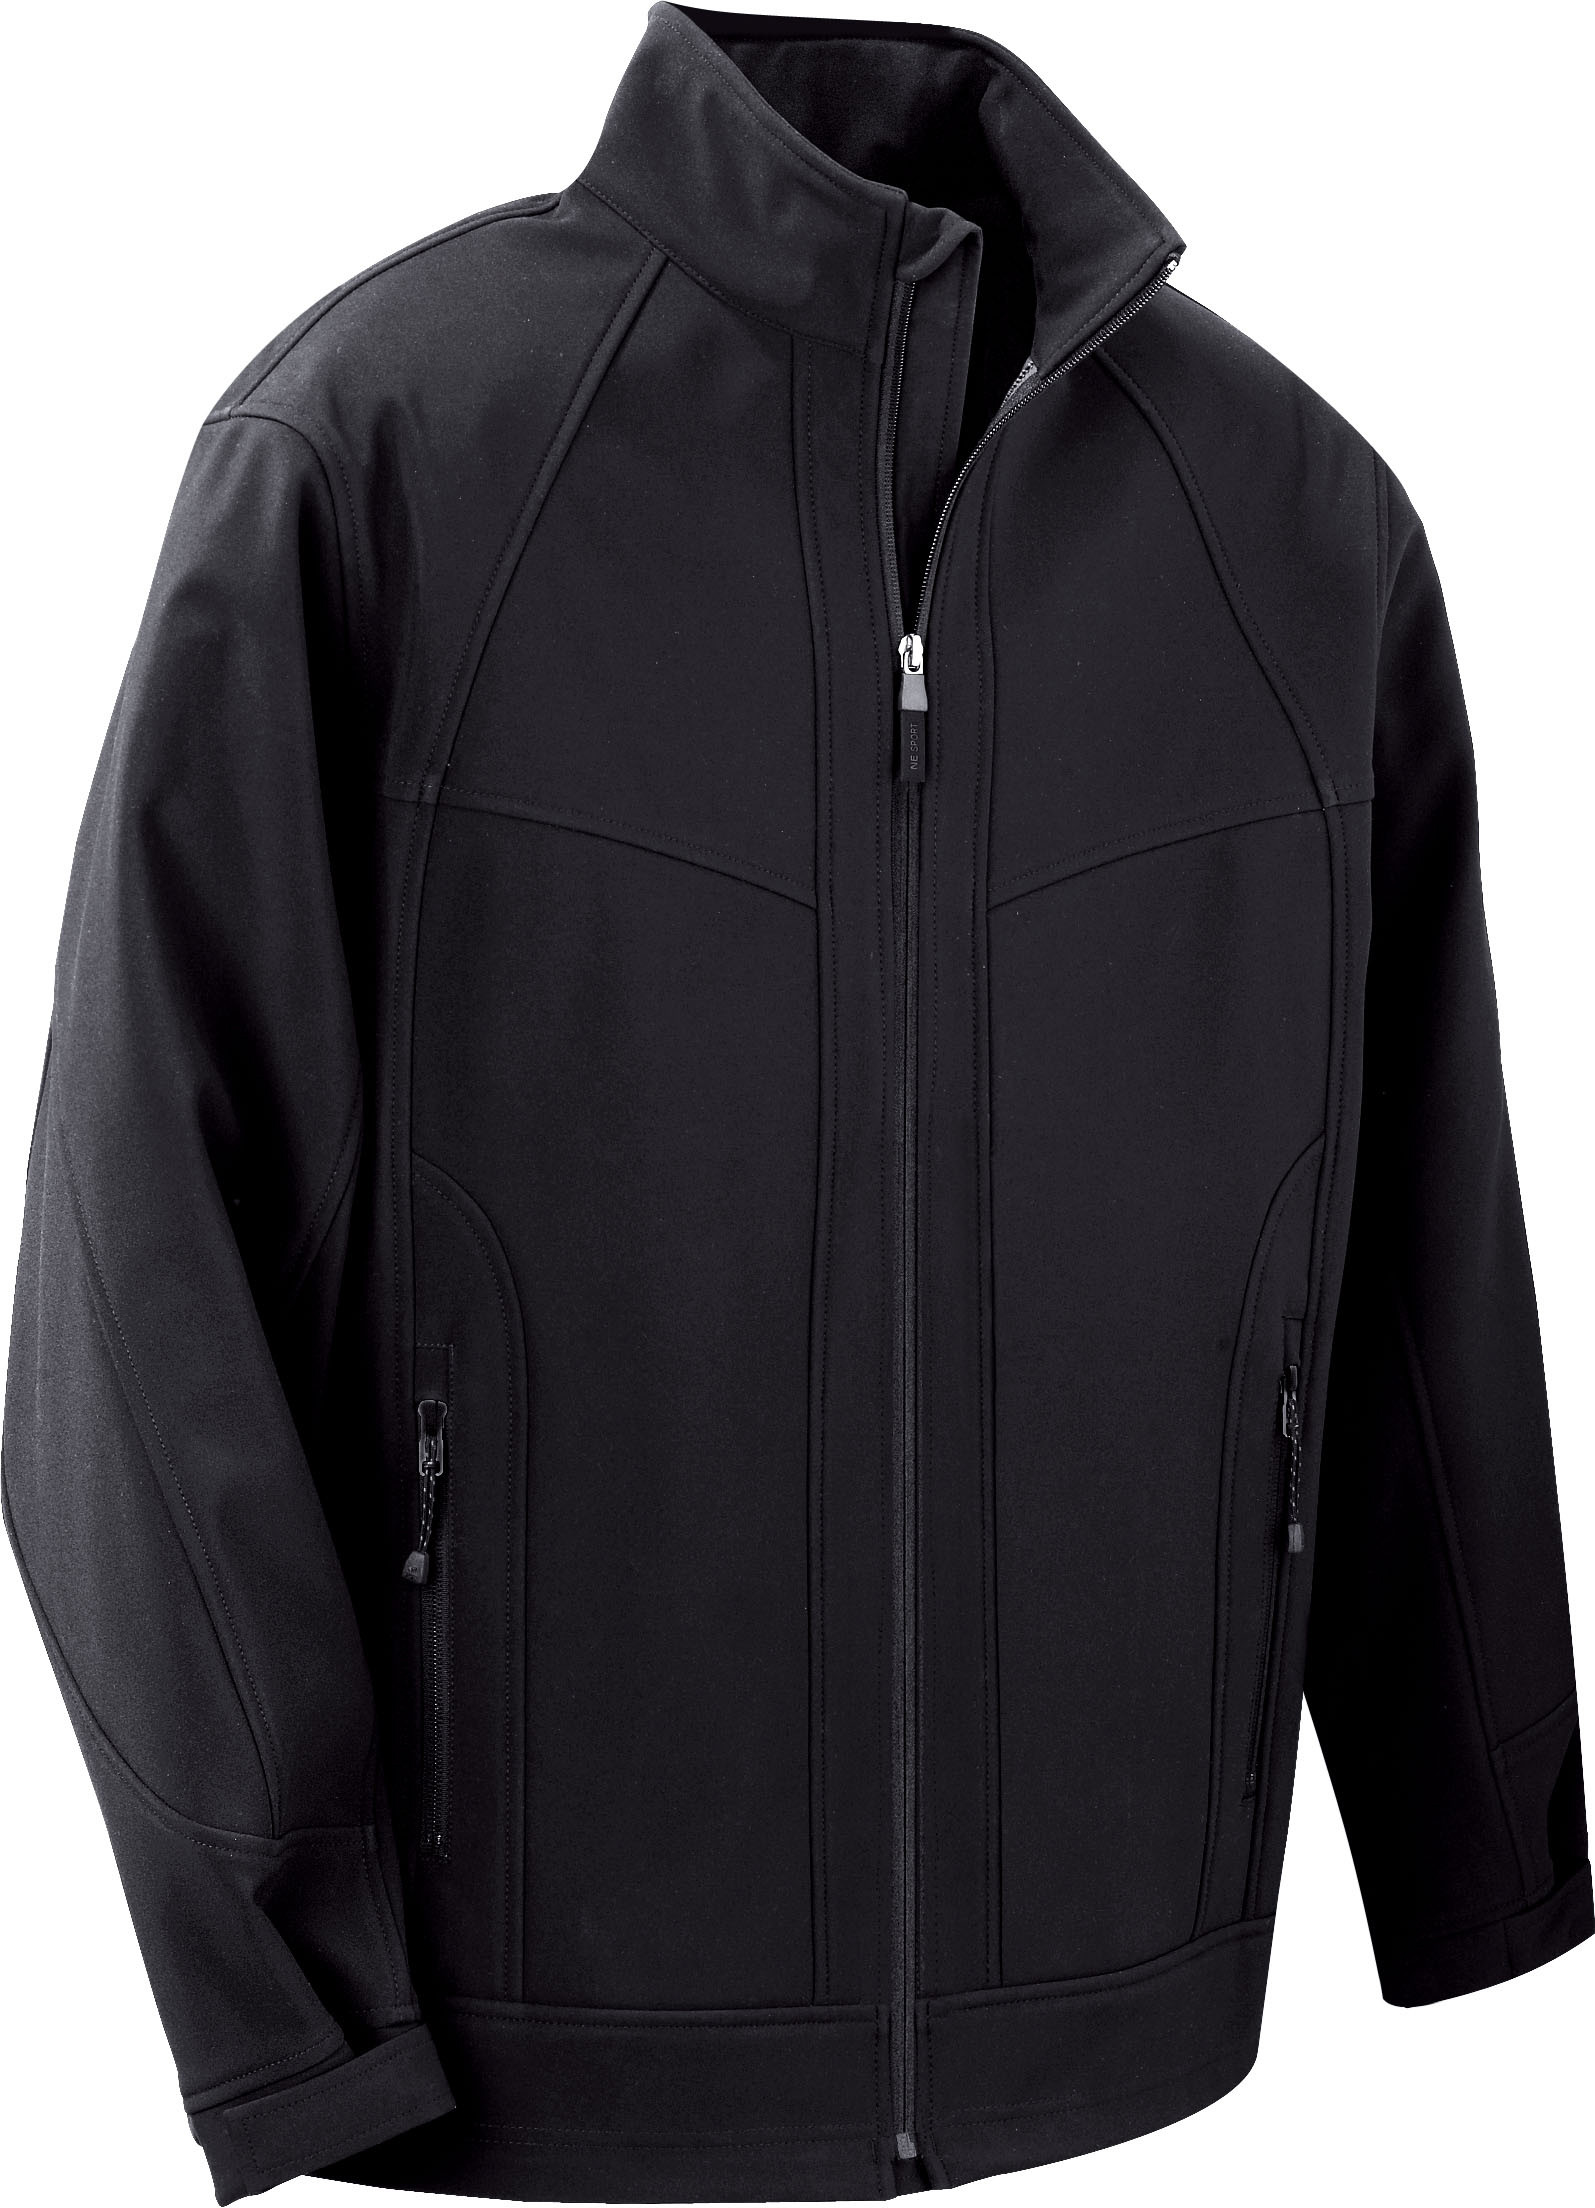 Ash City UTK 1 Warm.Logik 88604 - Men's 3-Layer Soft ...